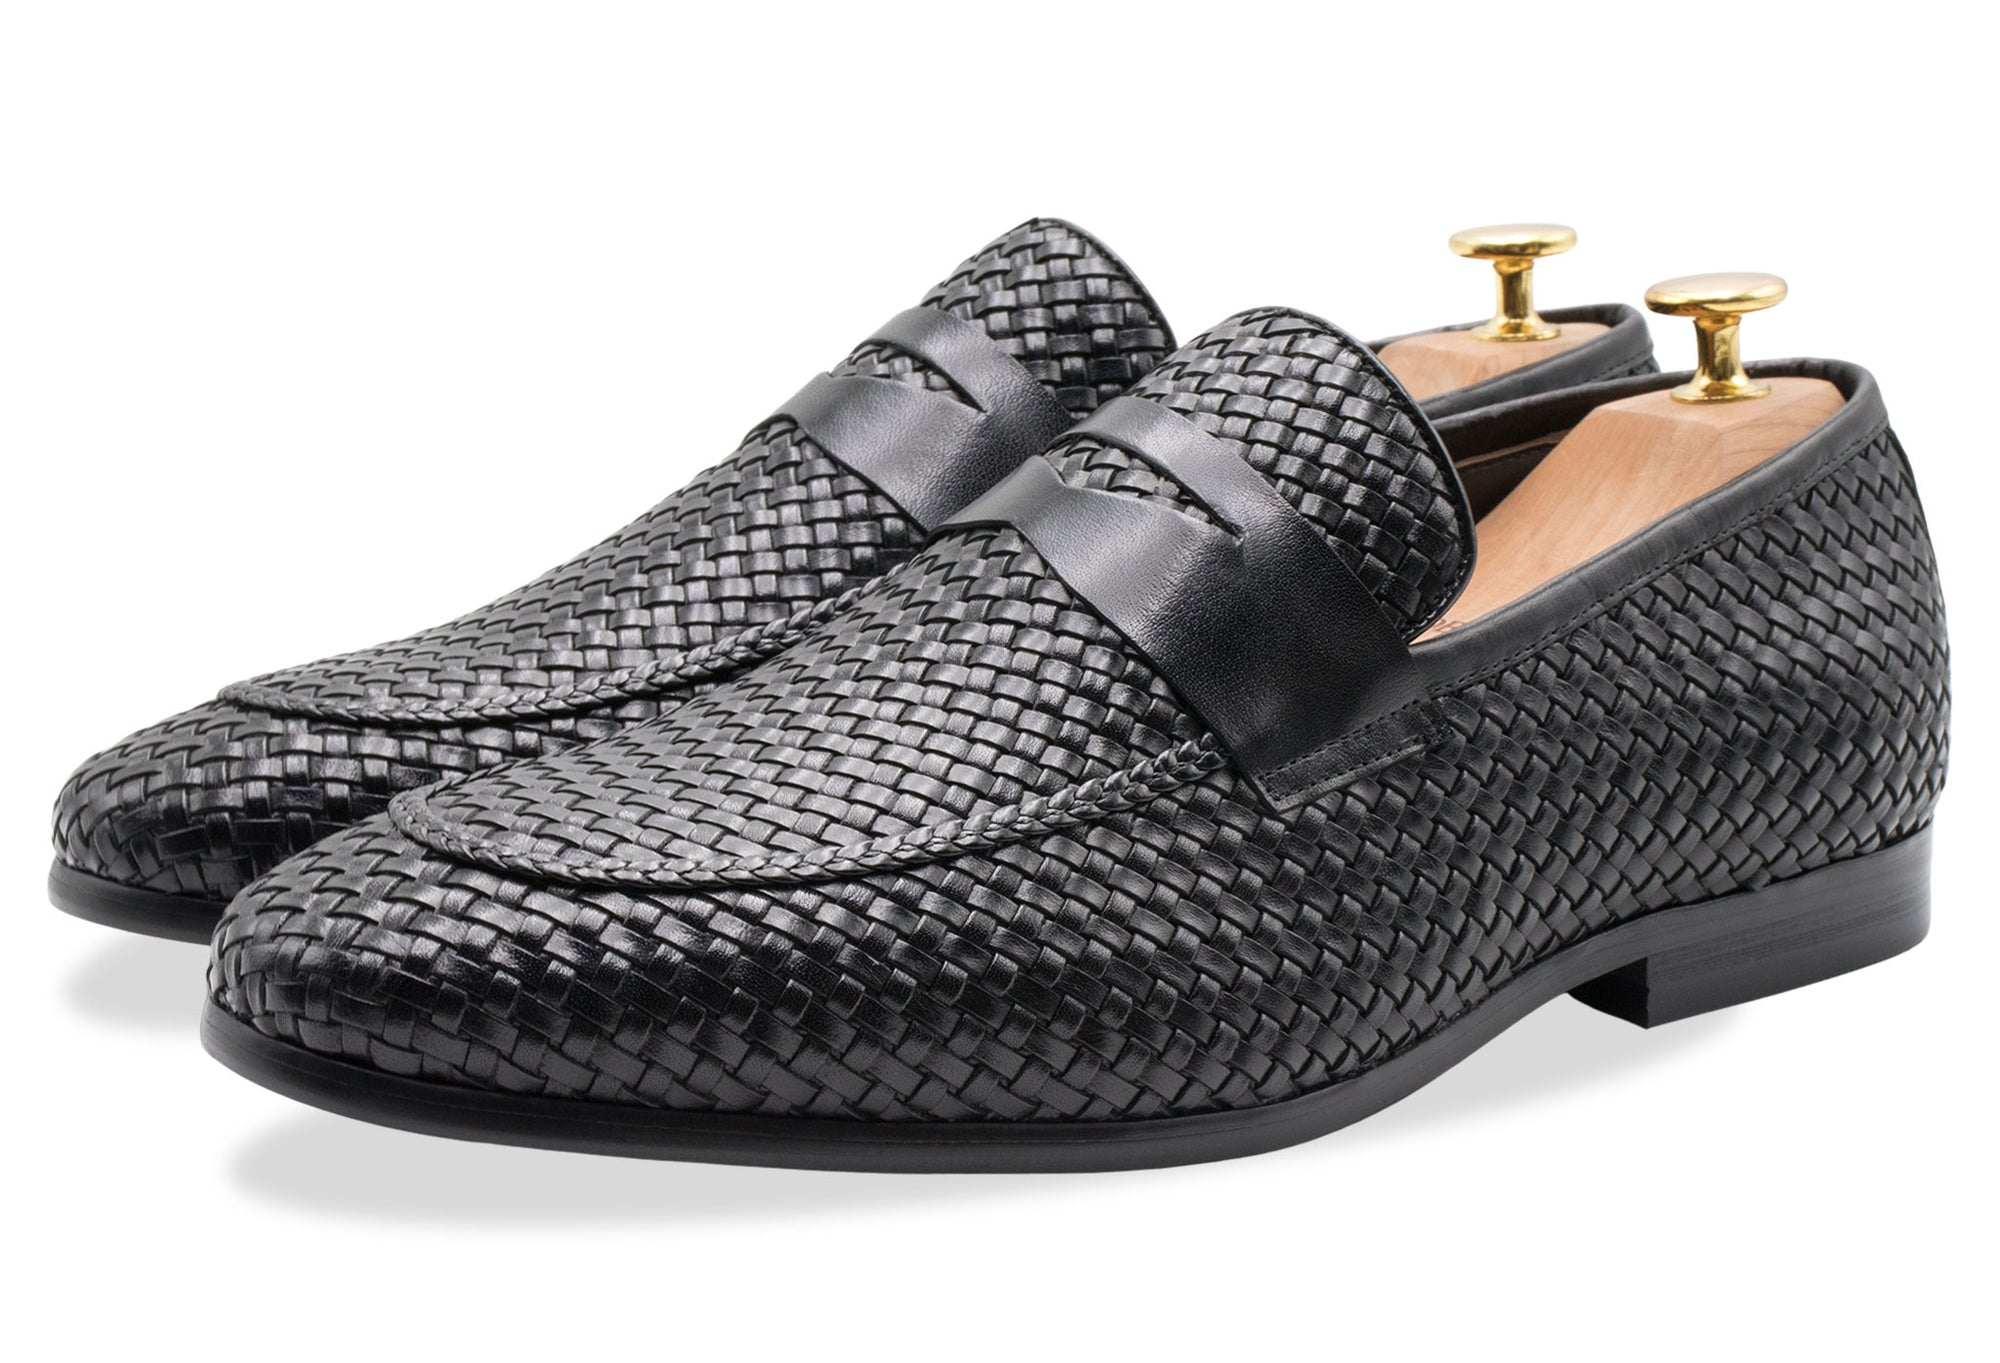 Viejo Black Penny Loafer